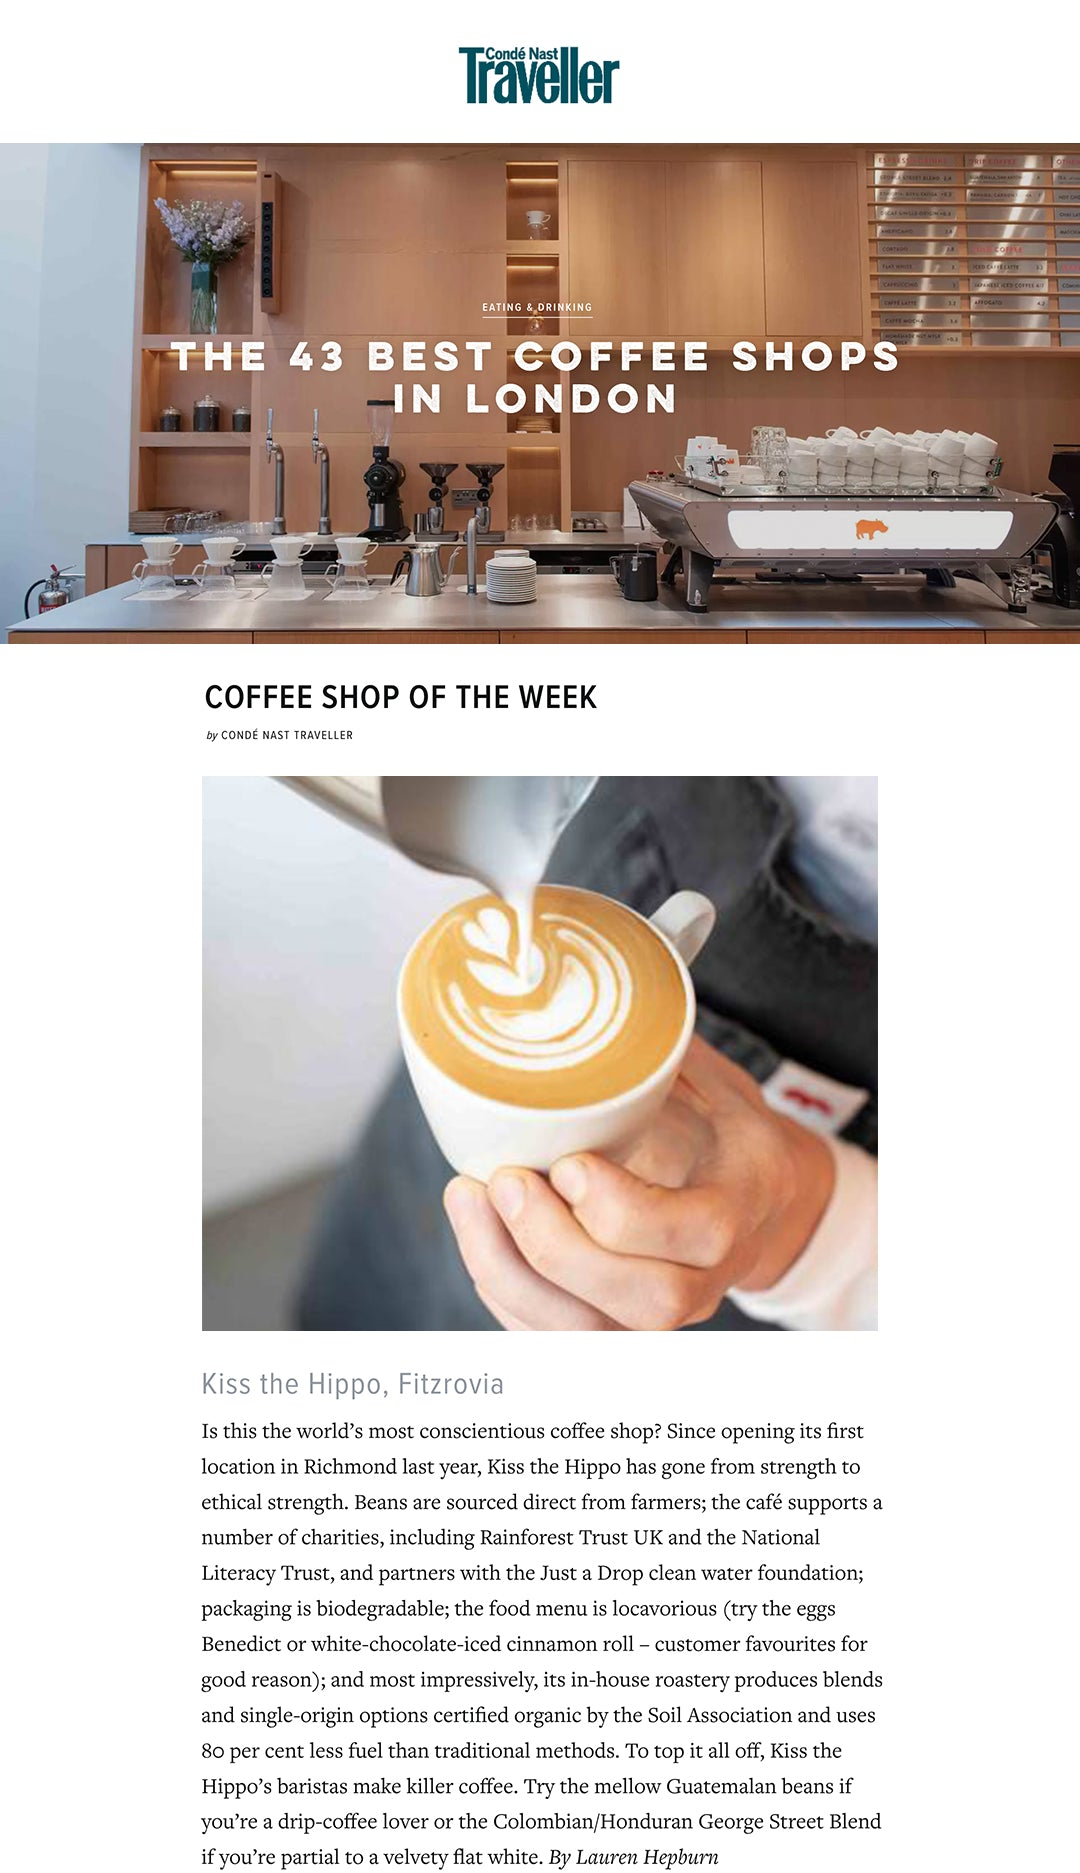 COFFEE SHOP OF THE WEEK